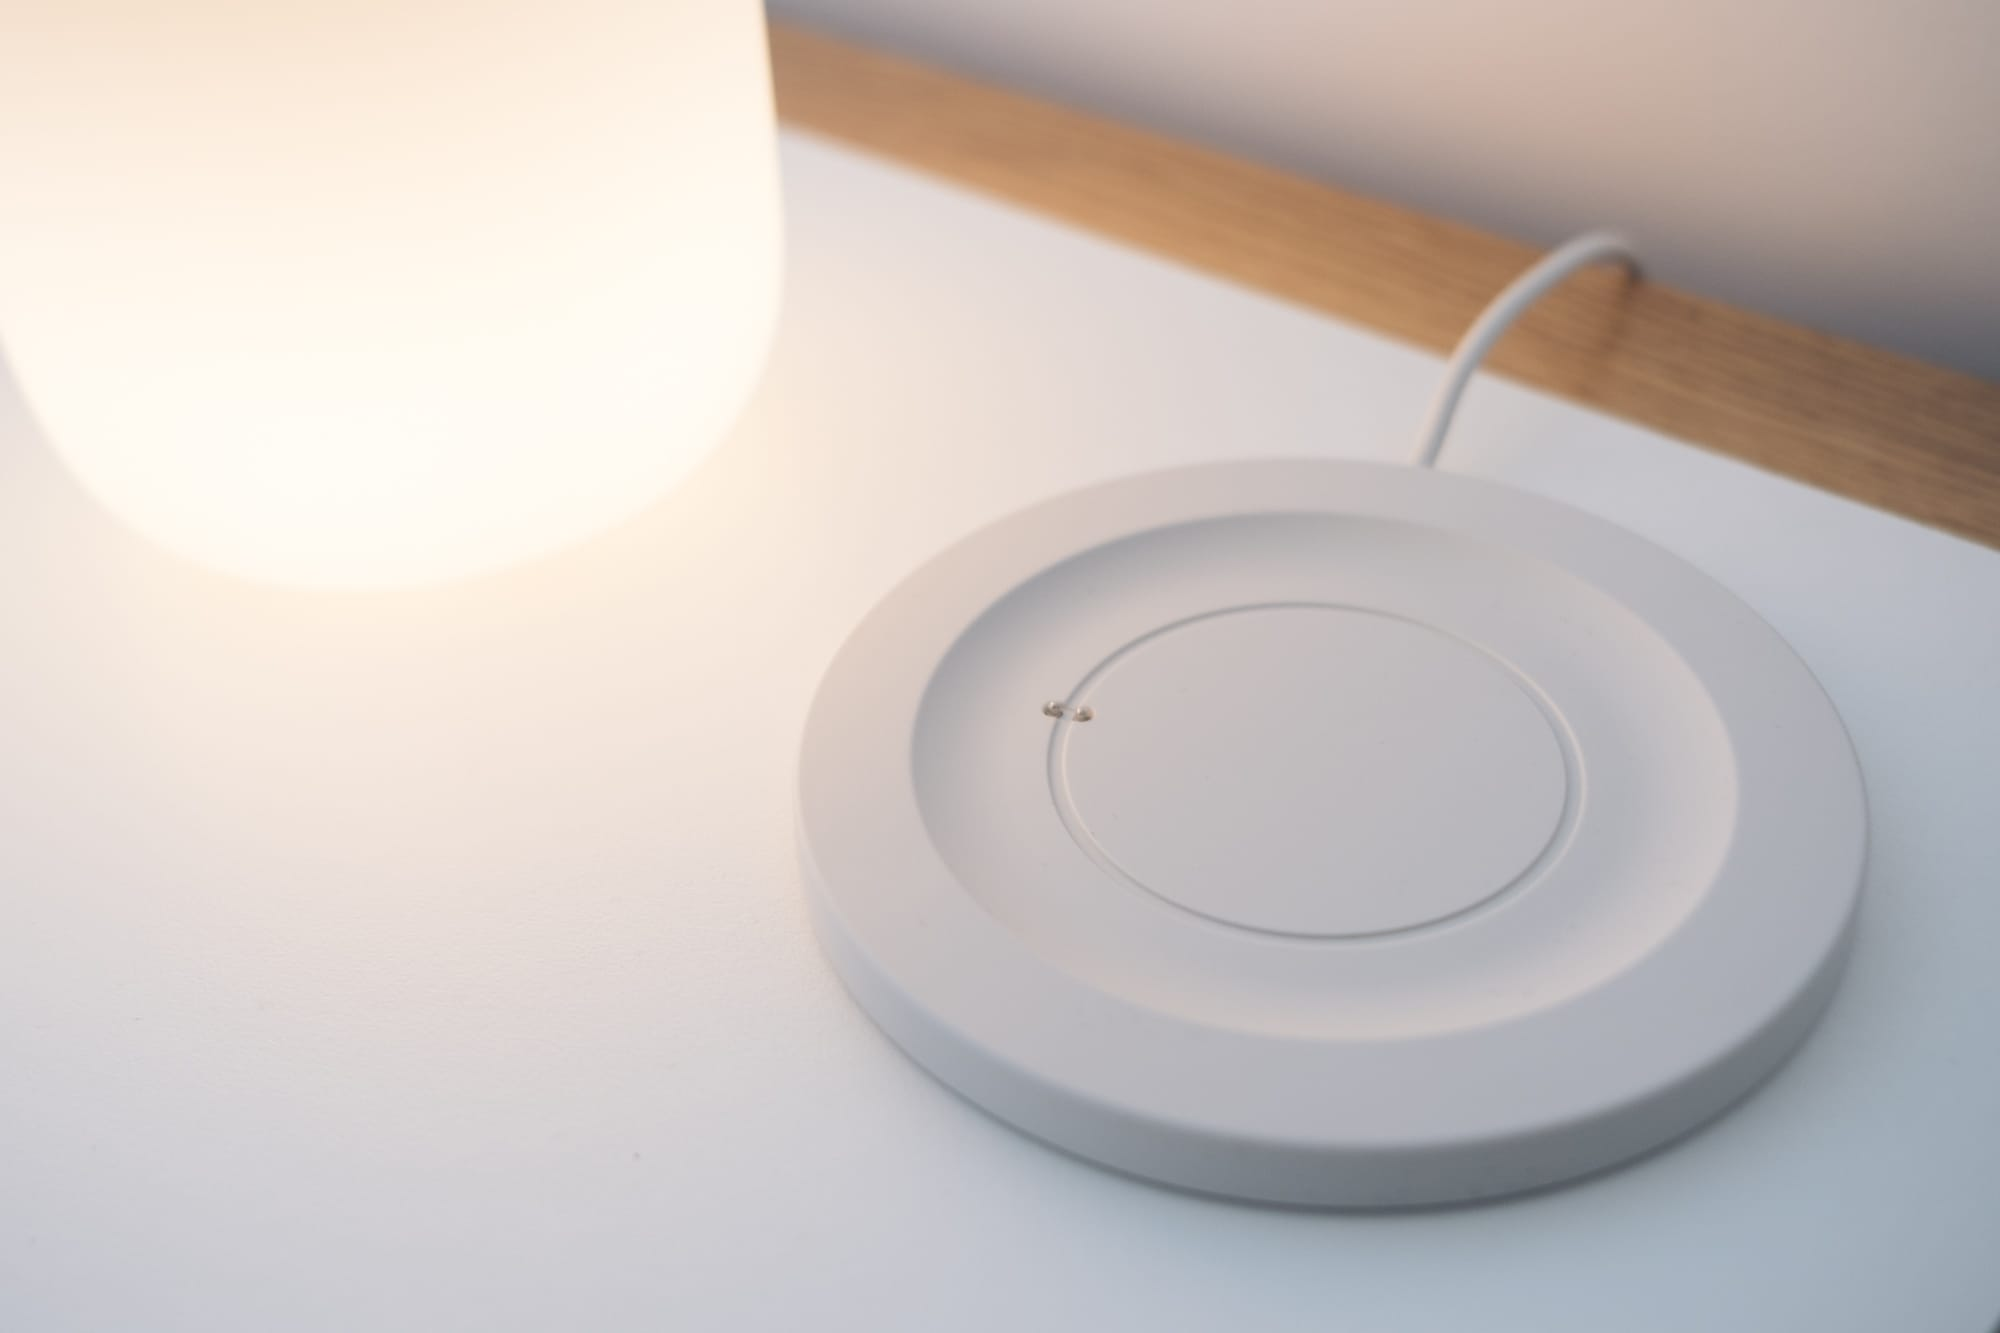 close up of the base station showing the shape